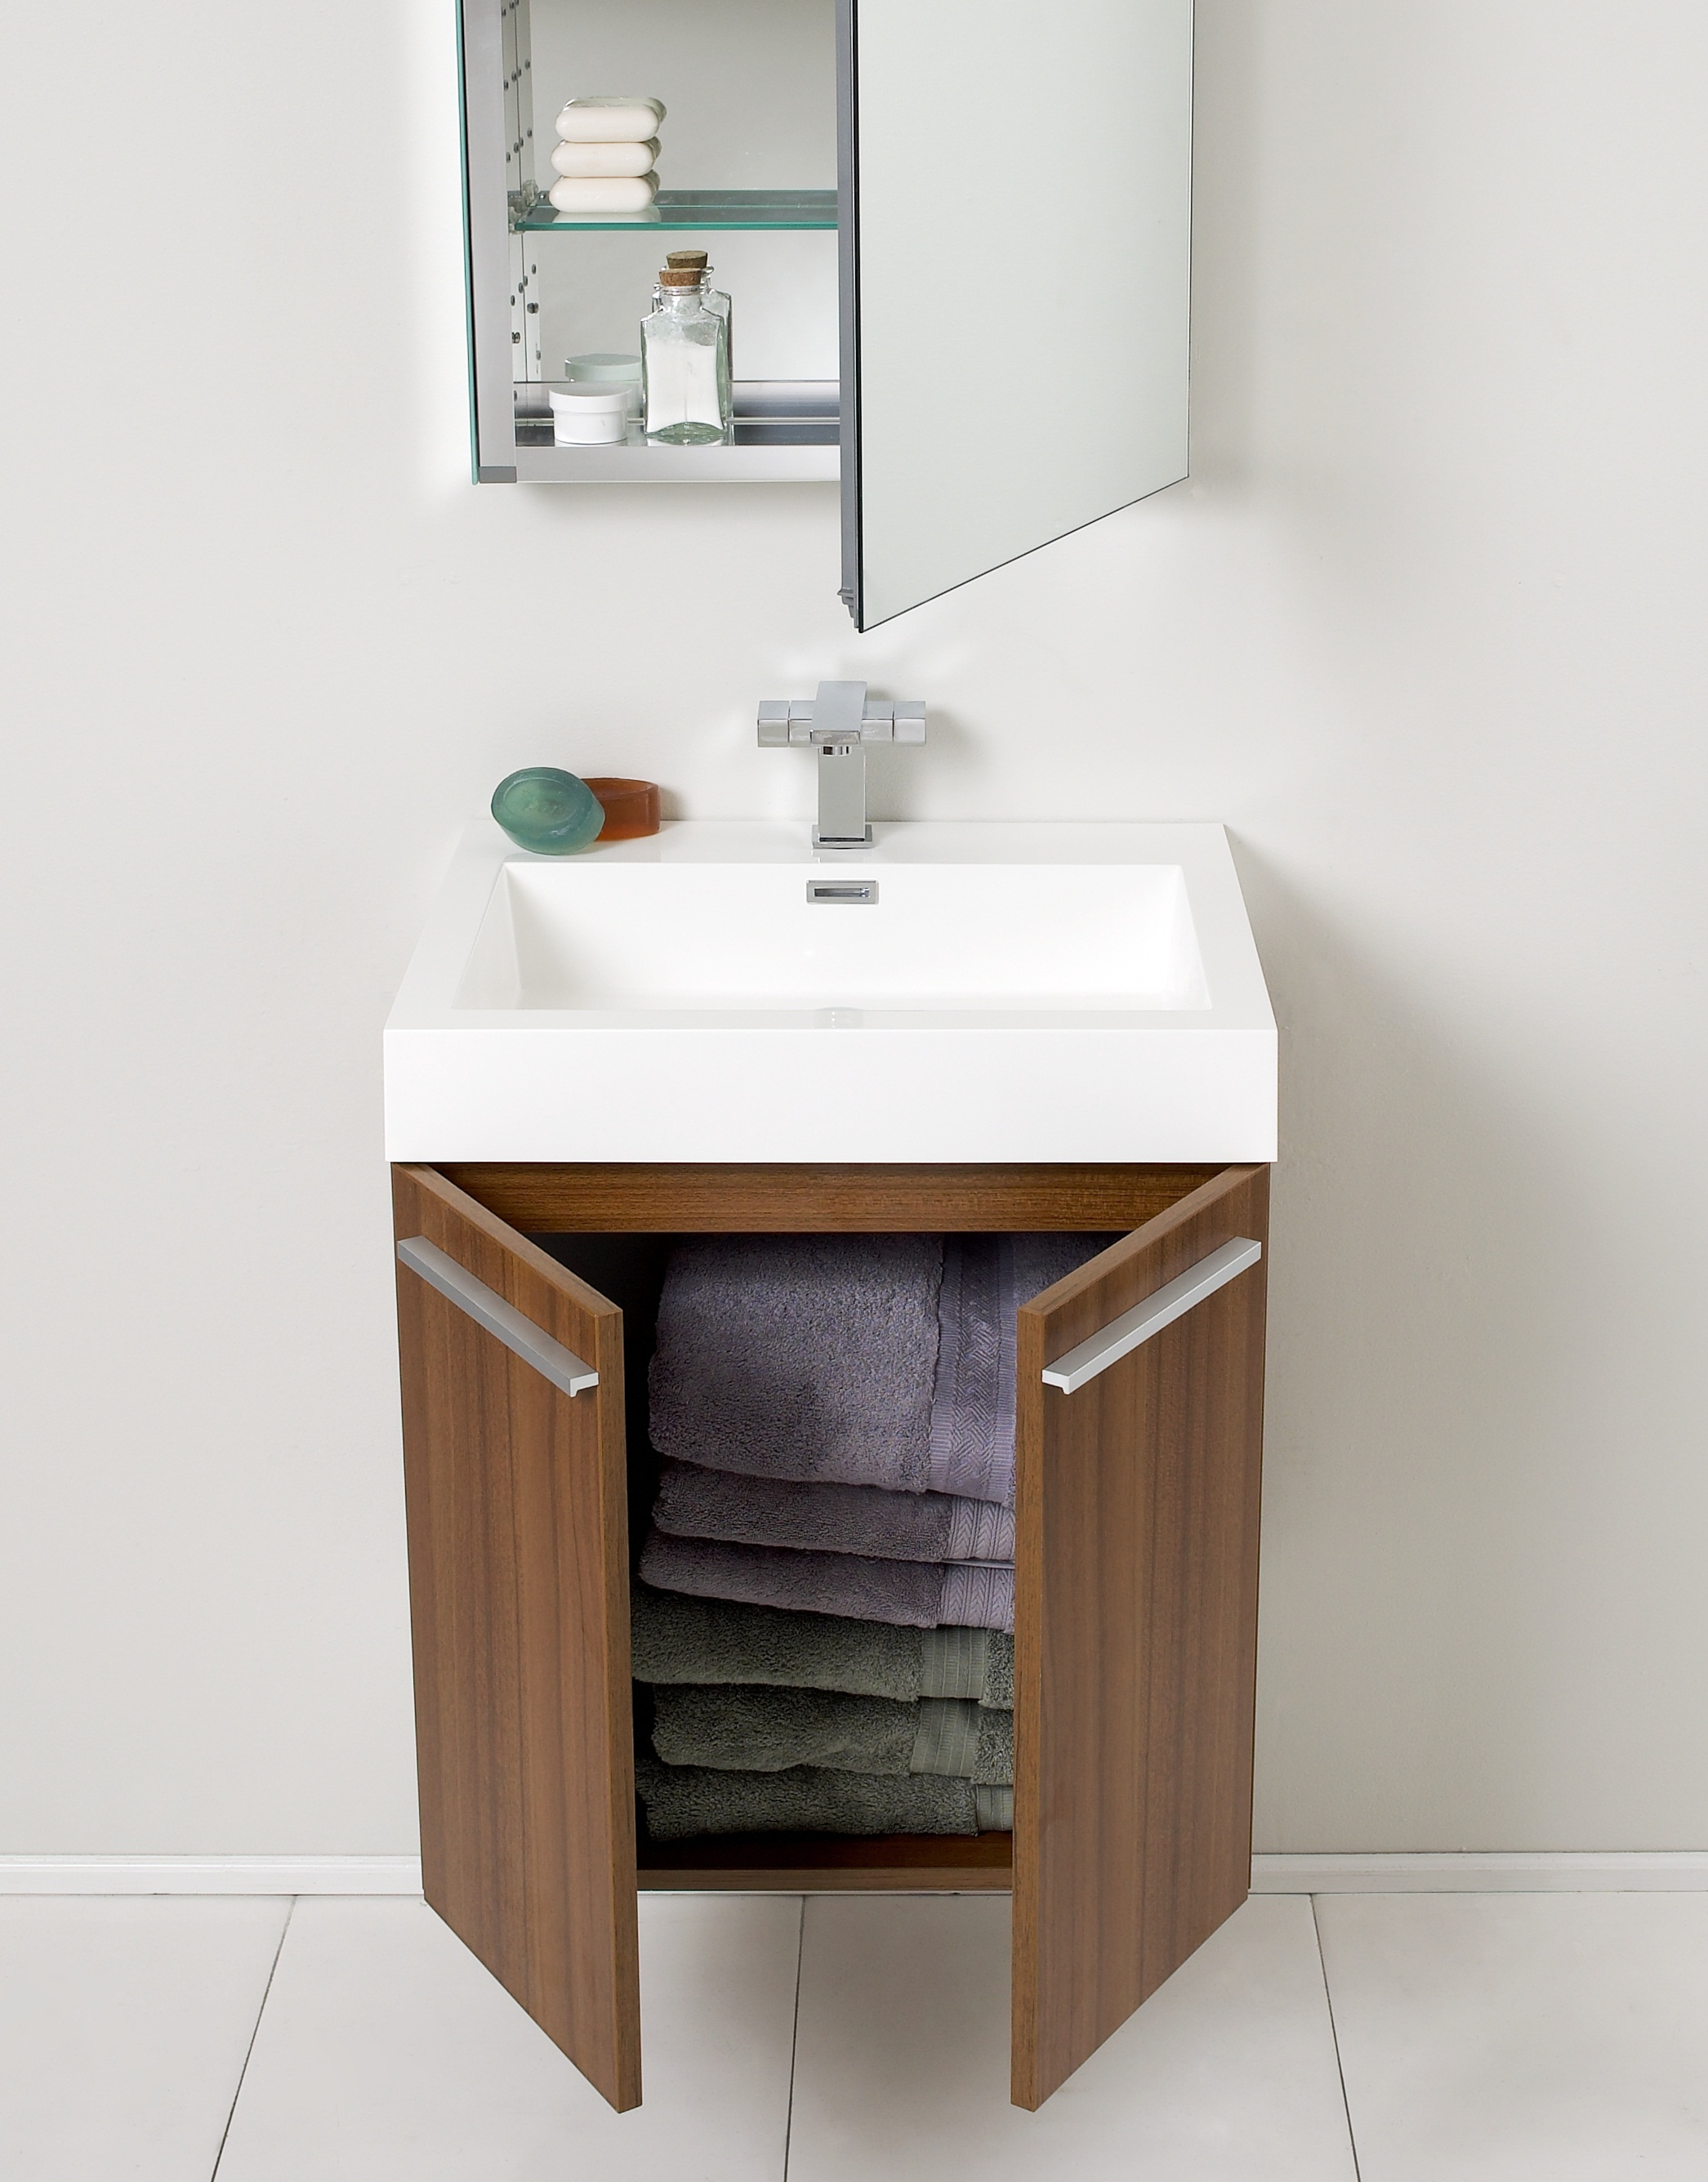 Small bathroom vanities for layouts lacking space eva for Bathroom sink and toilet cabinets